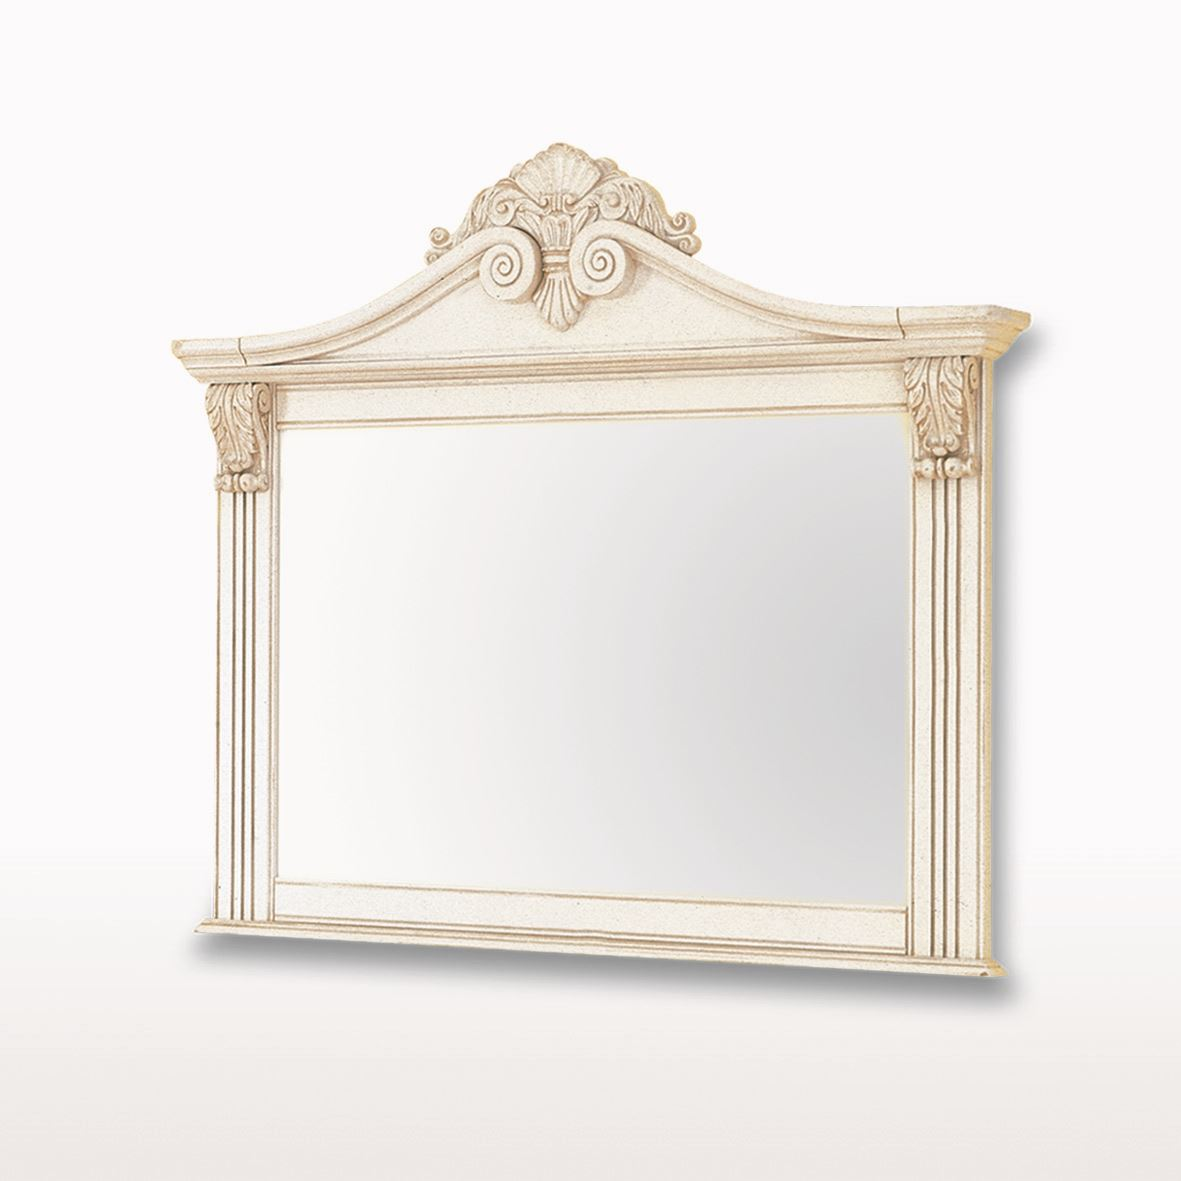 Amore' - Crested Wall Mirror - ABJ406